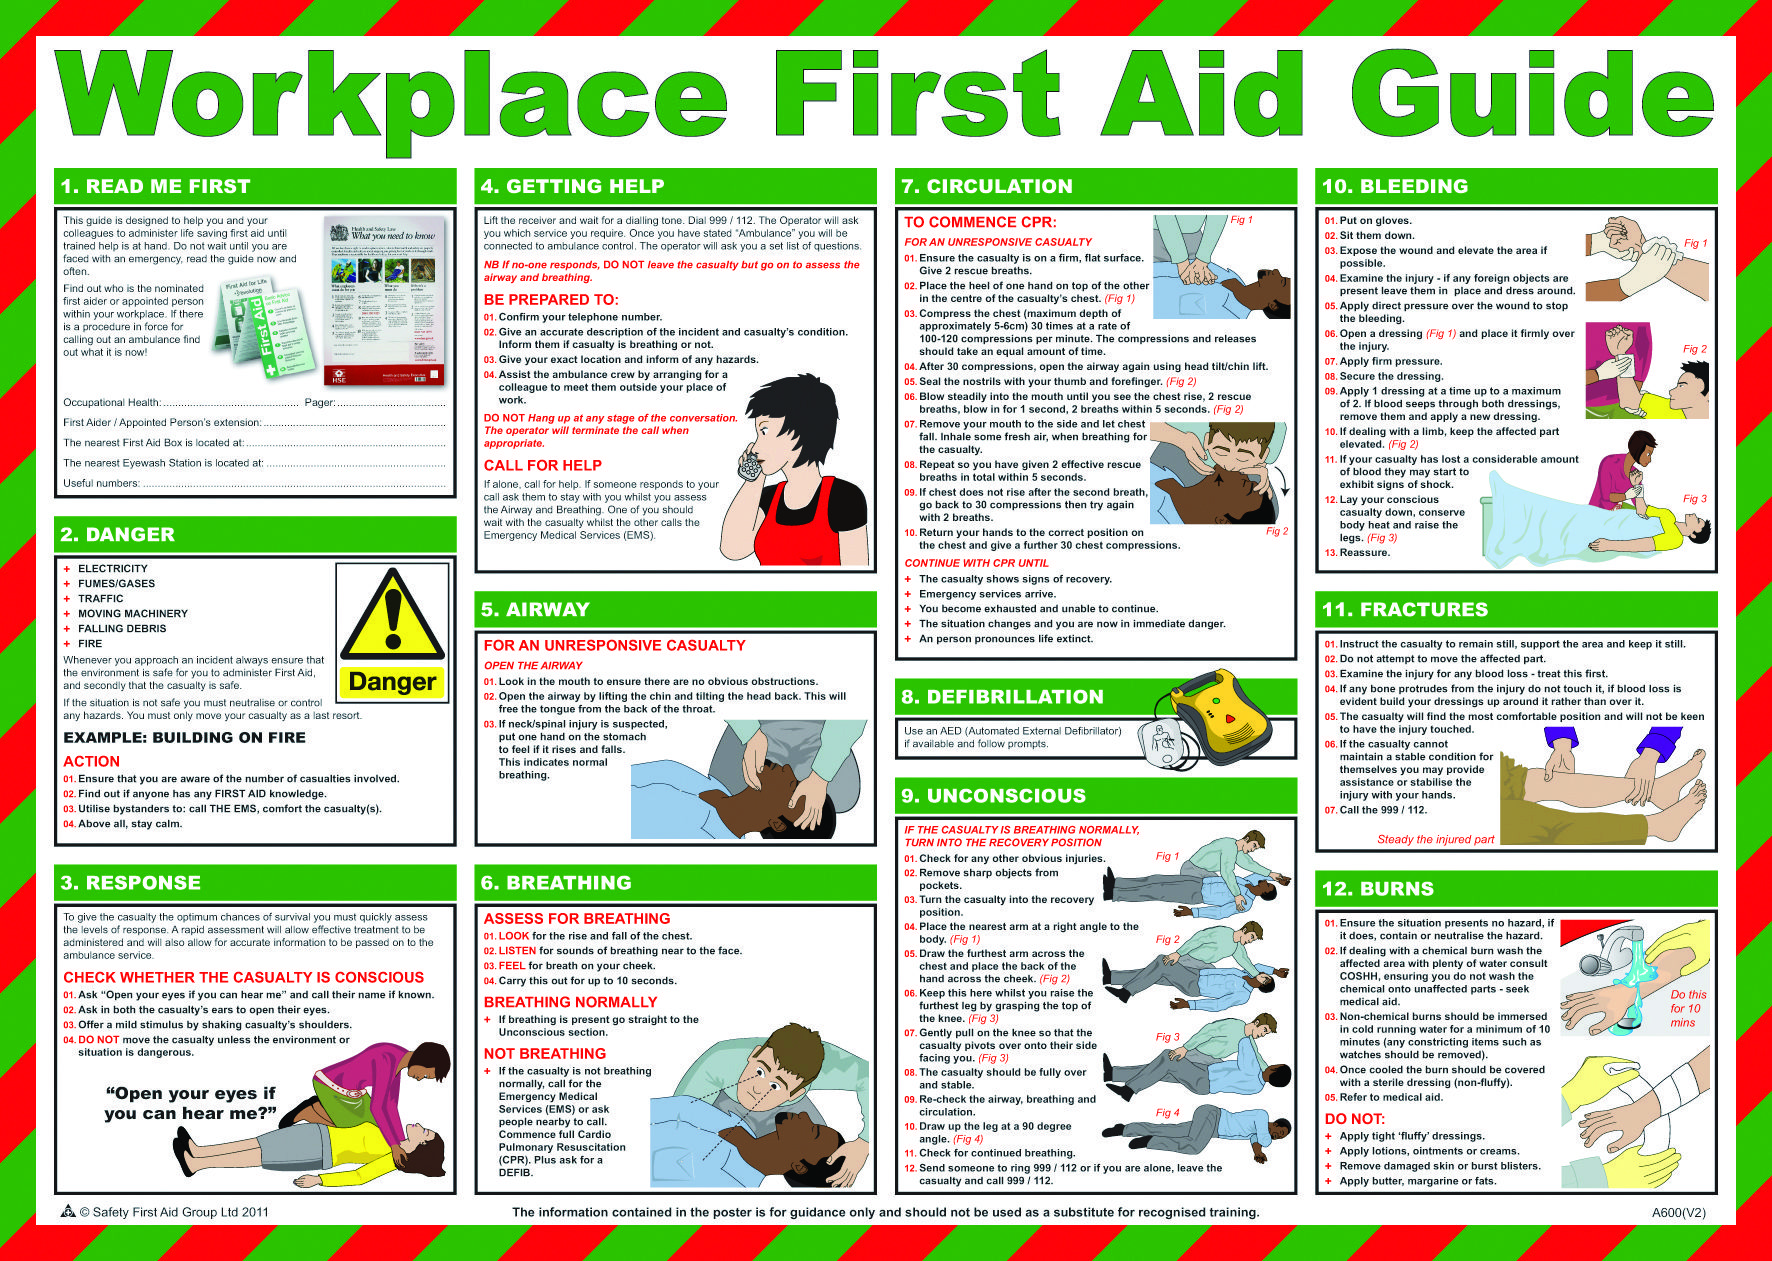 A first aider in the workplace provides